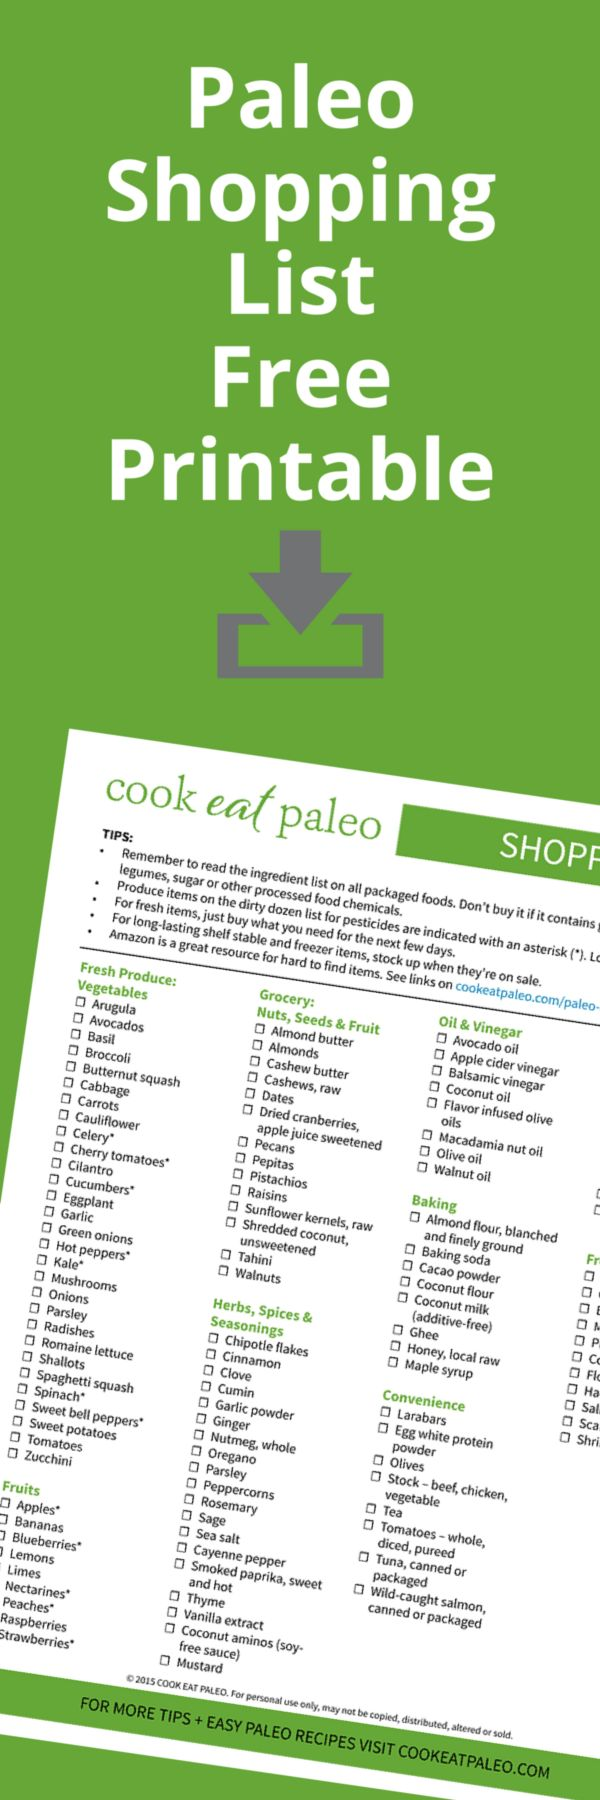 Download the FREE printable Paleo Shopping list and learn how to stock your paleo pantry.